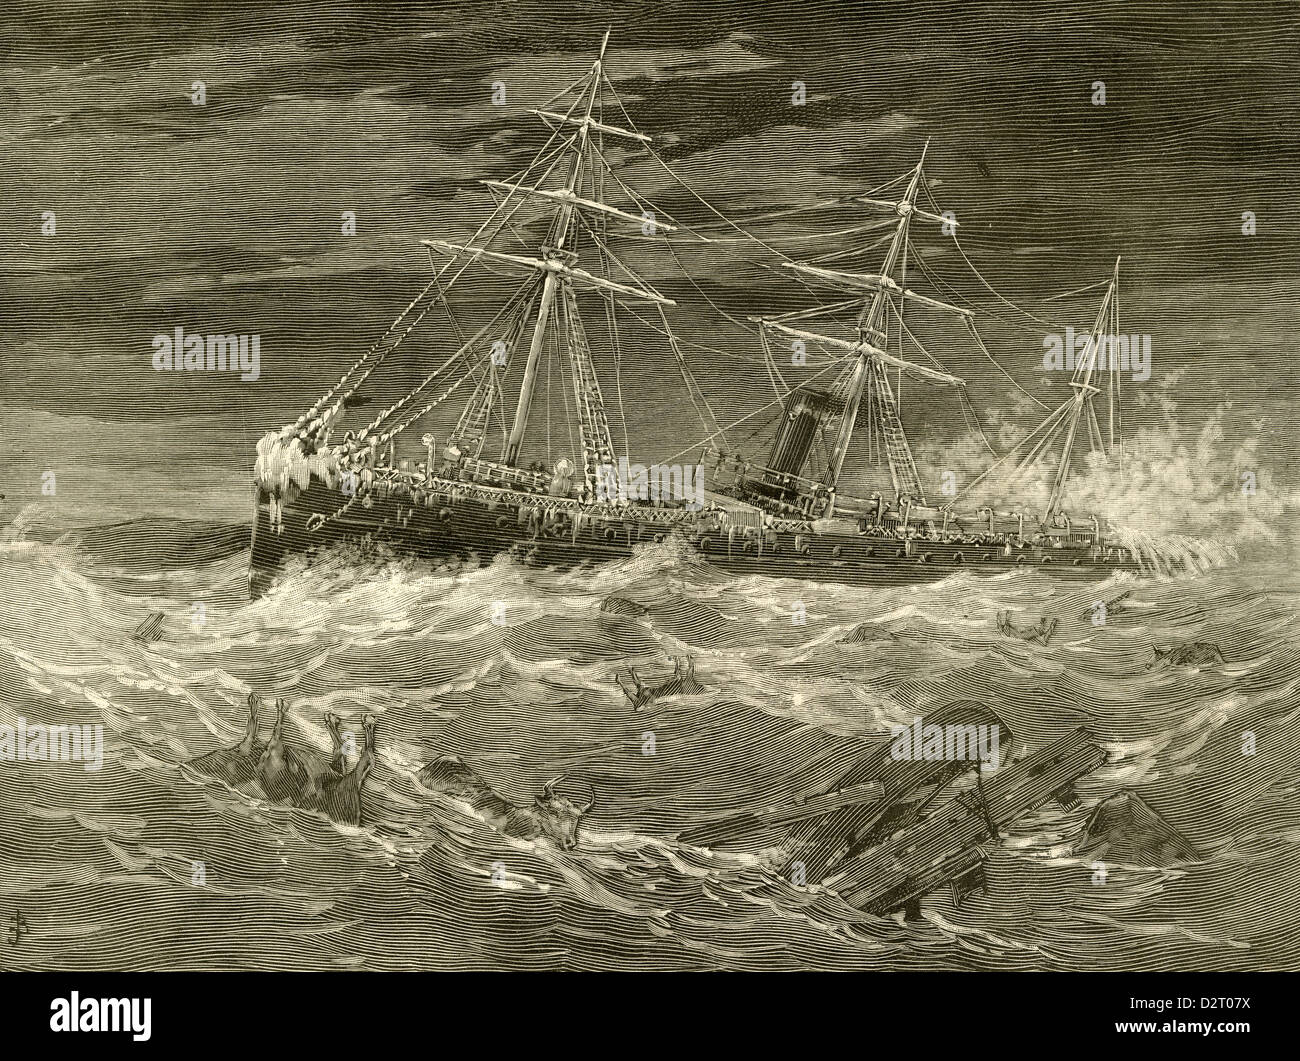 1890 engraving, The Late Terrible Storms on the Atlantic - An Ocean Steamer Passing Through a Mass of Wreckage. - Stock Image